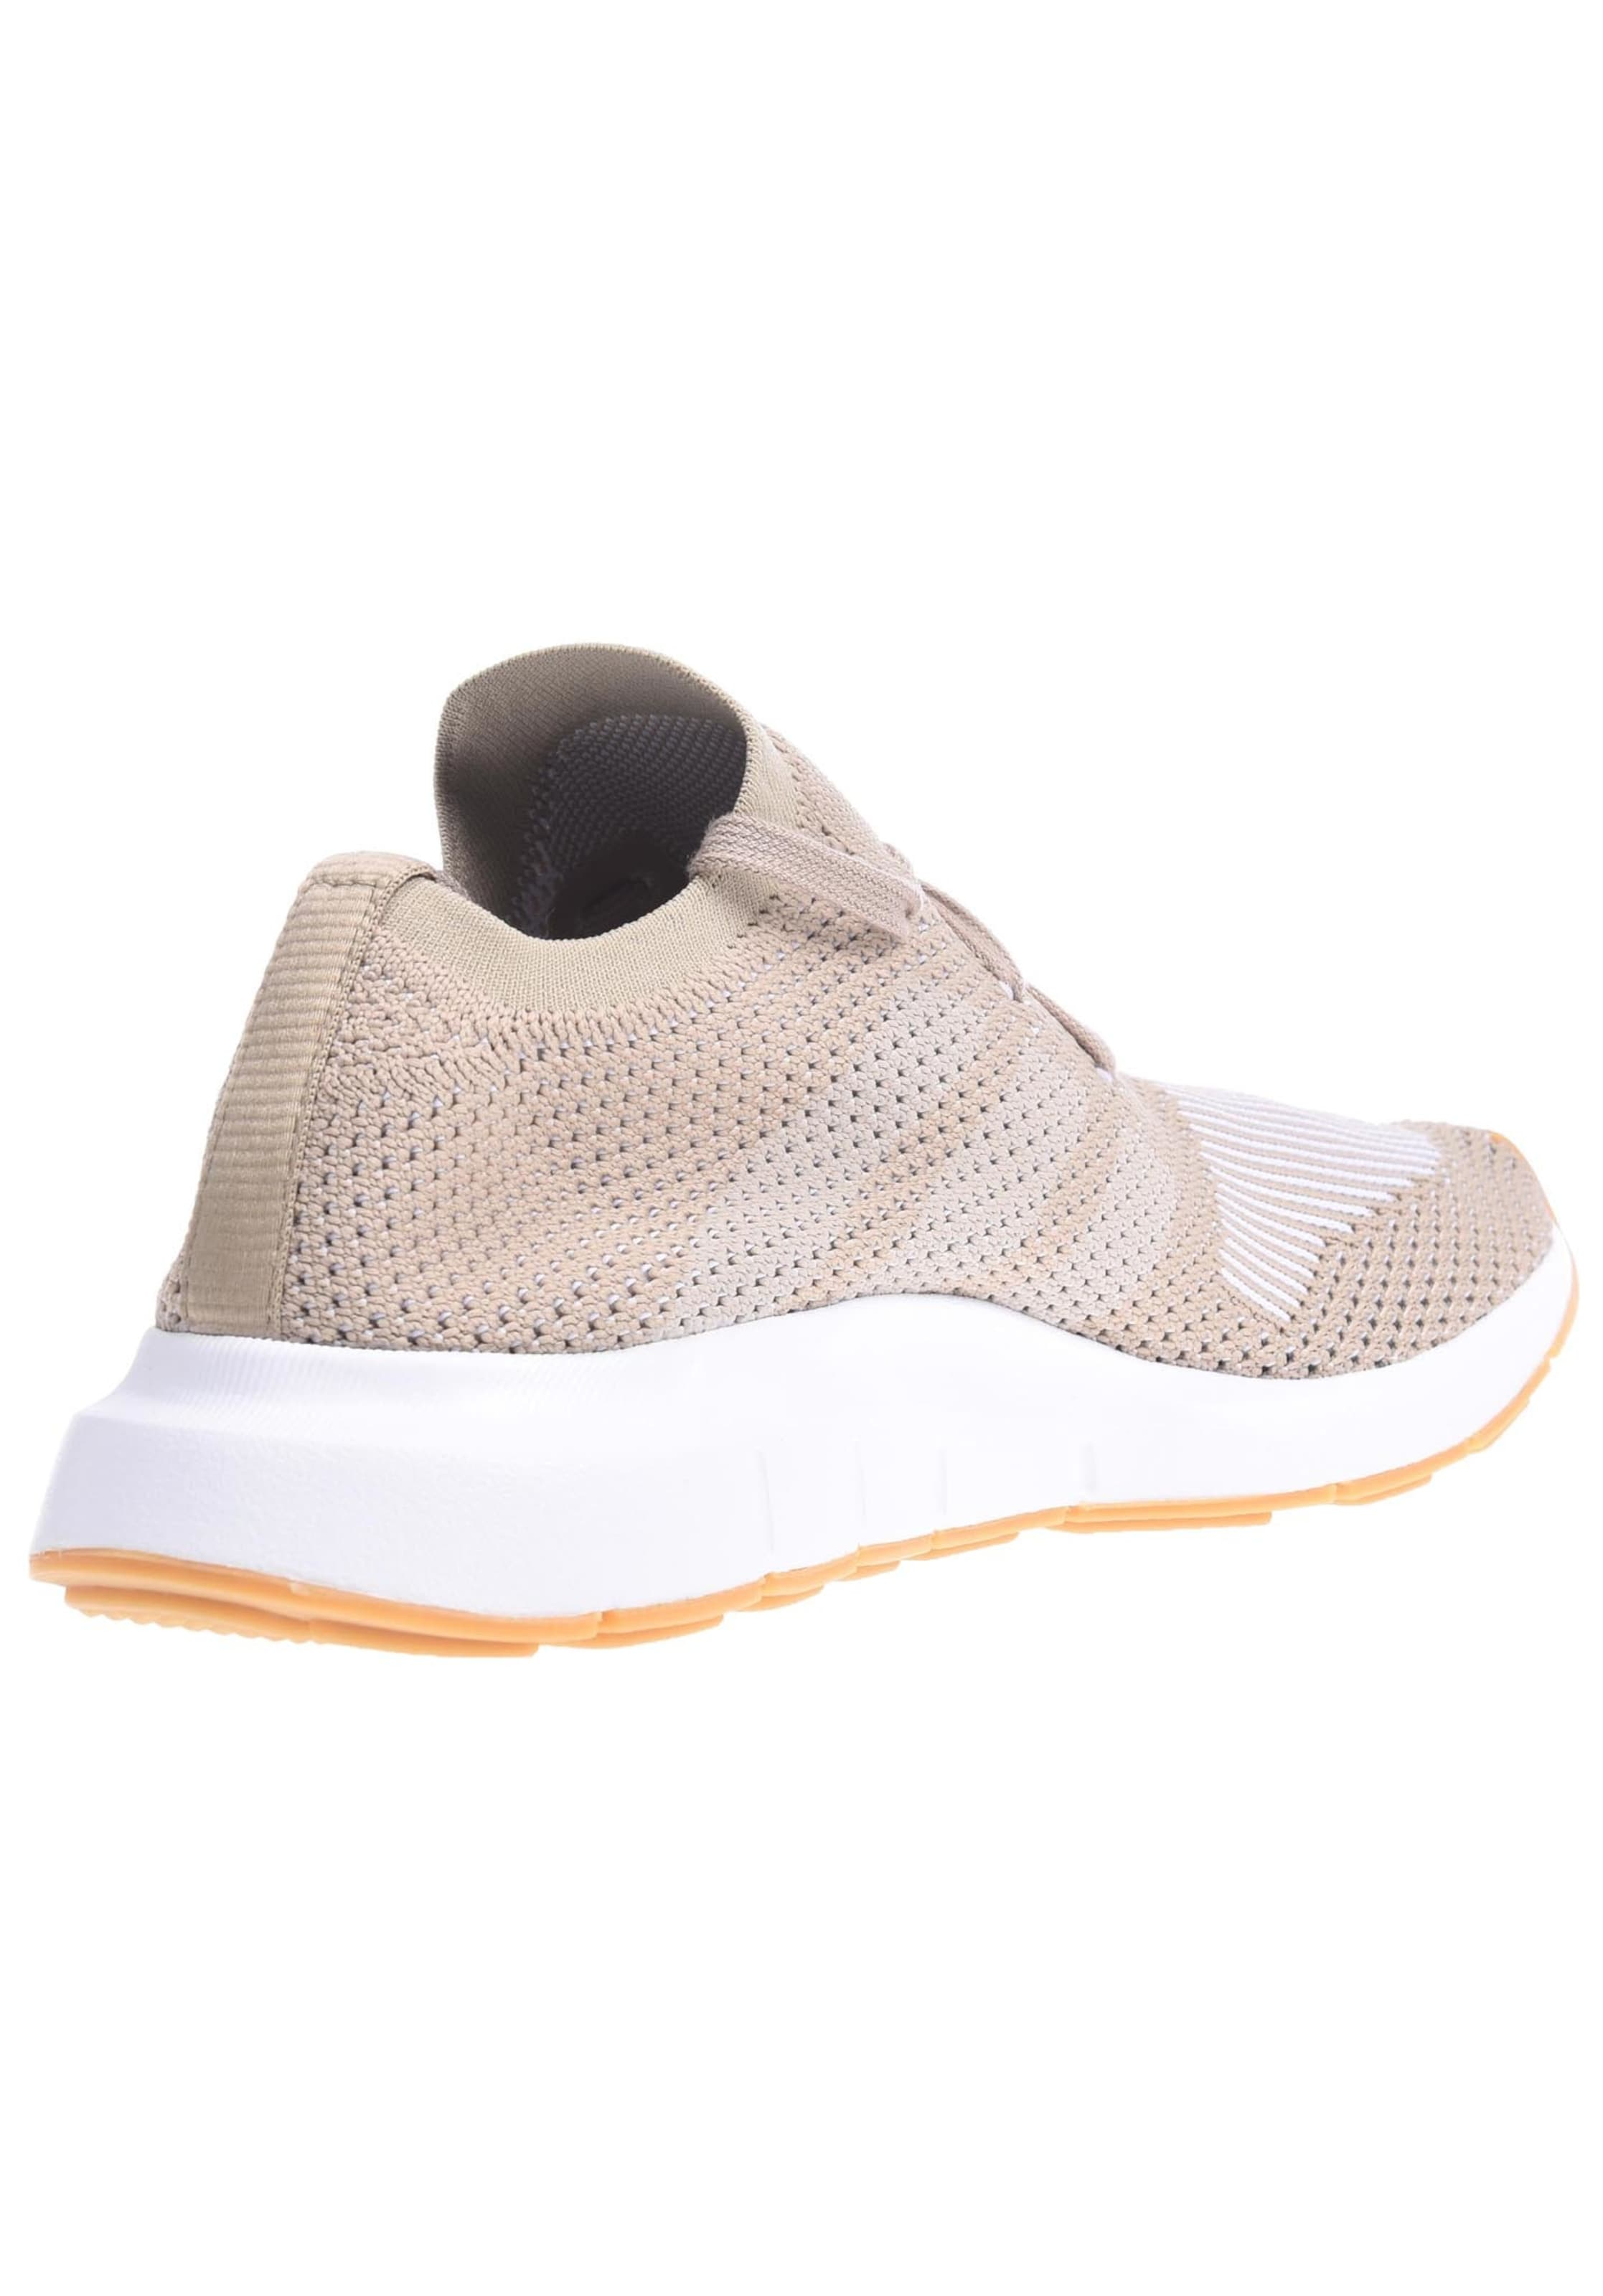 Pk' Sneaker Beige Run Adidas 'swift In Originals qj354RLA